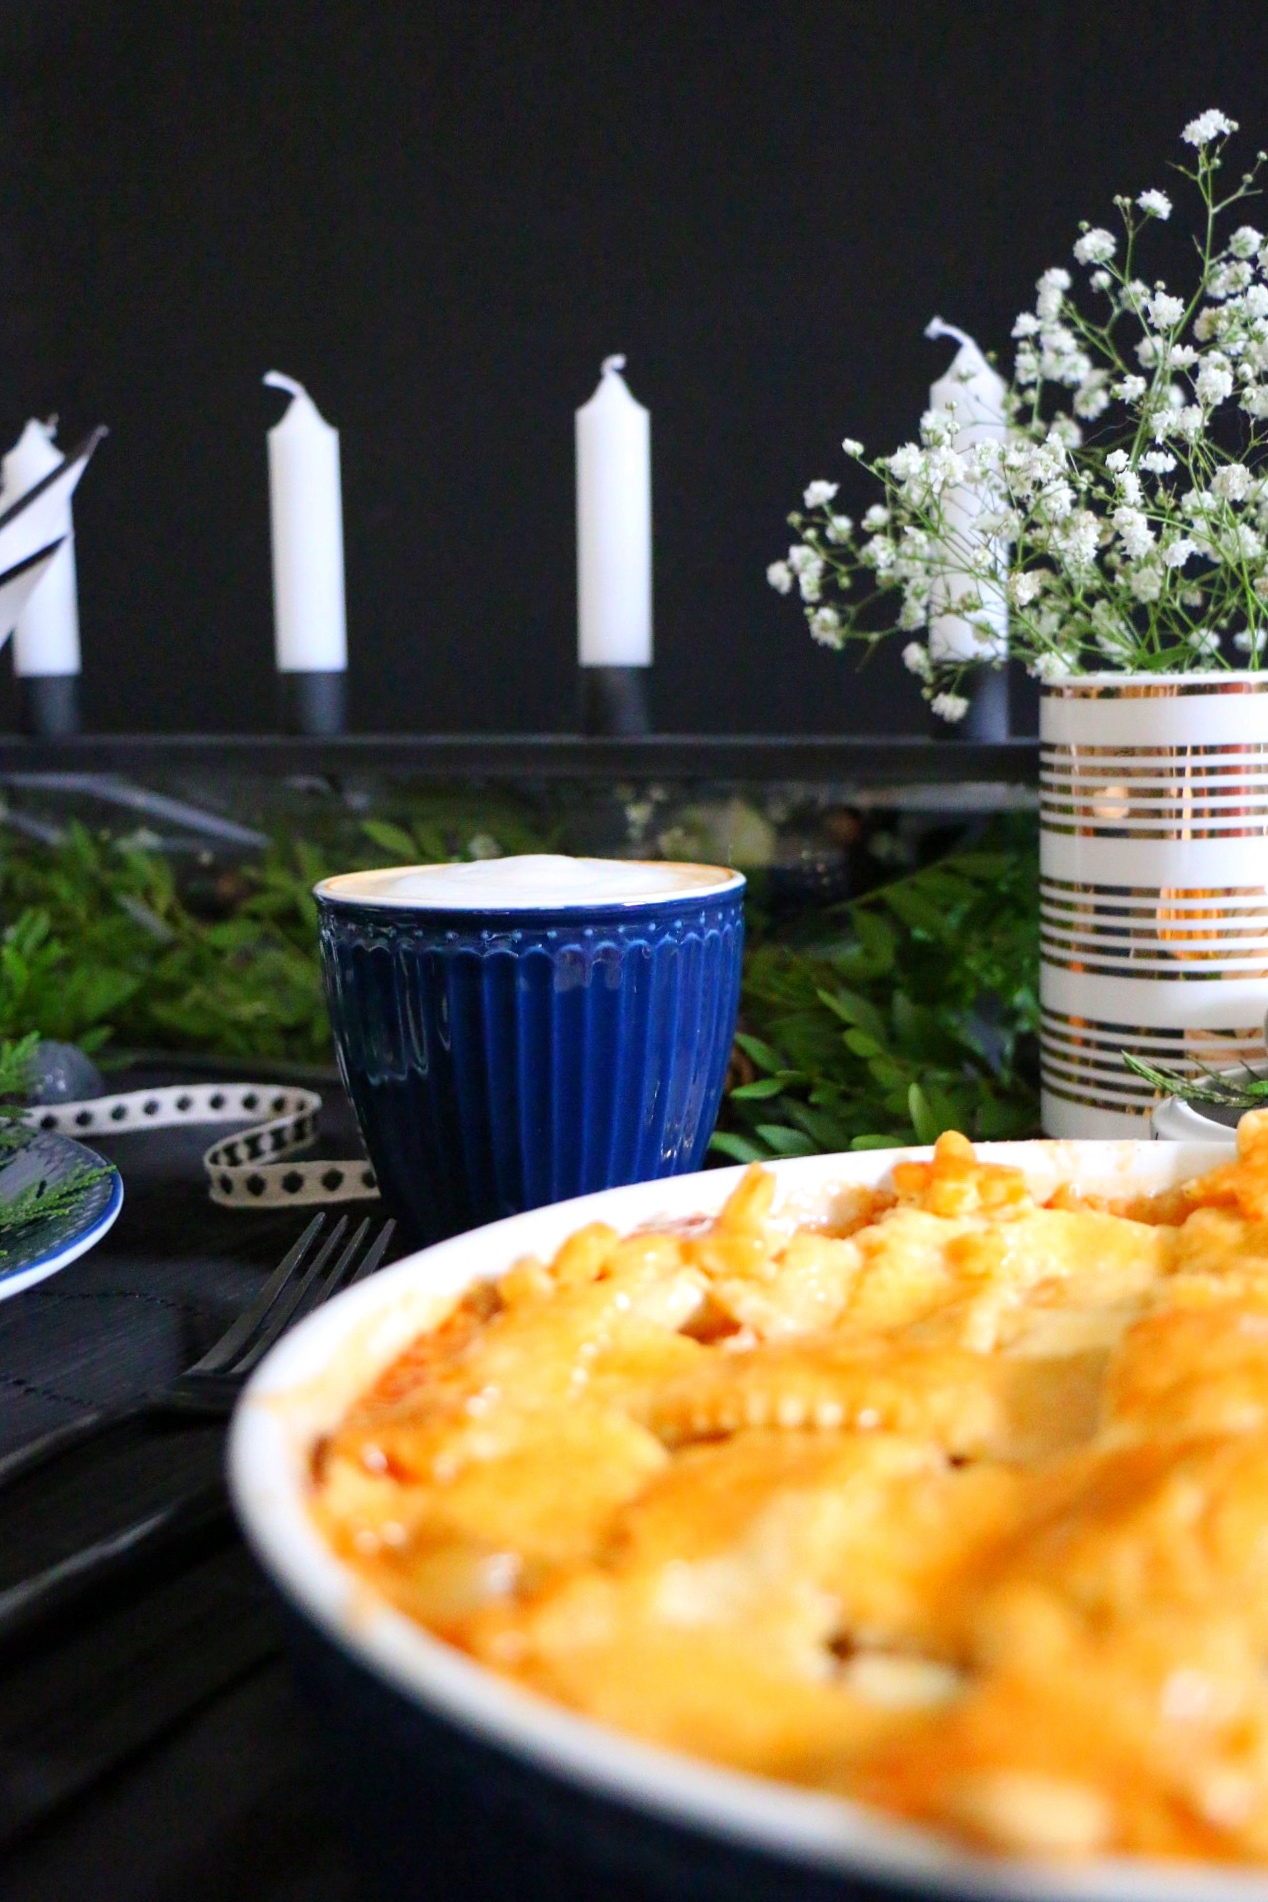 Getting ready for Xmas - Danish Table Setting by eat blog love